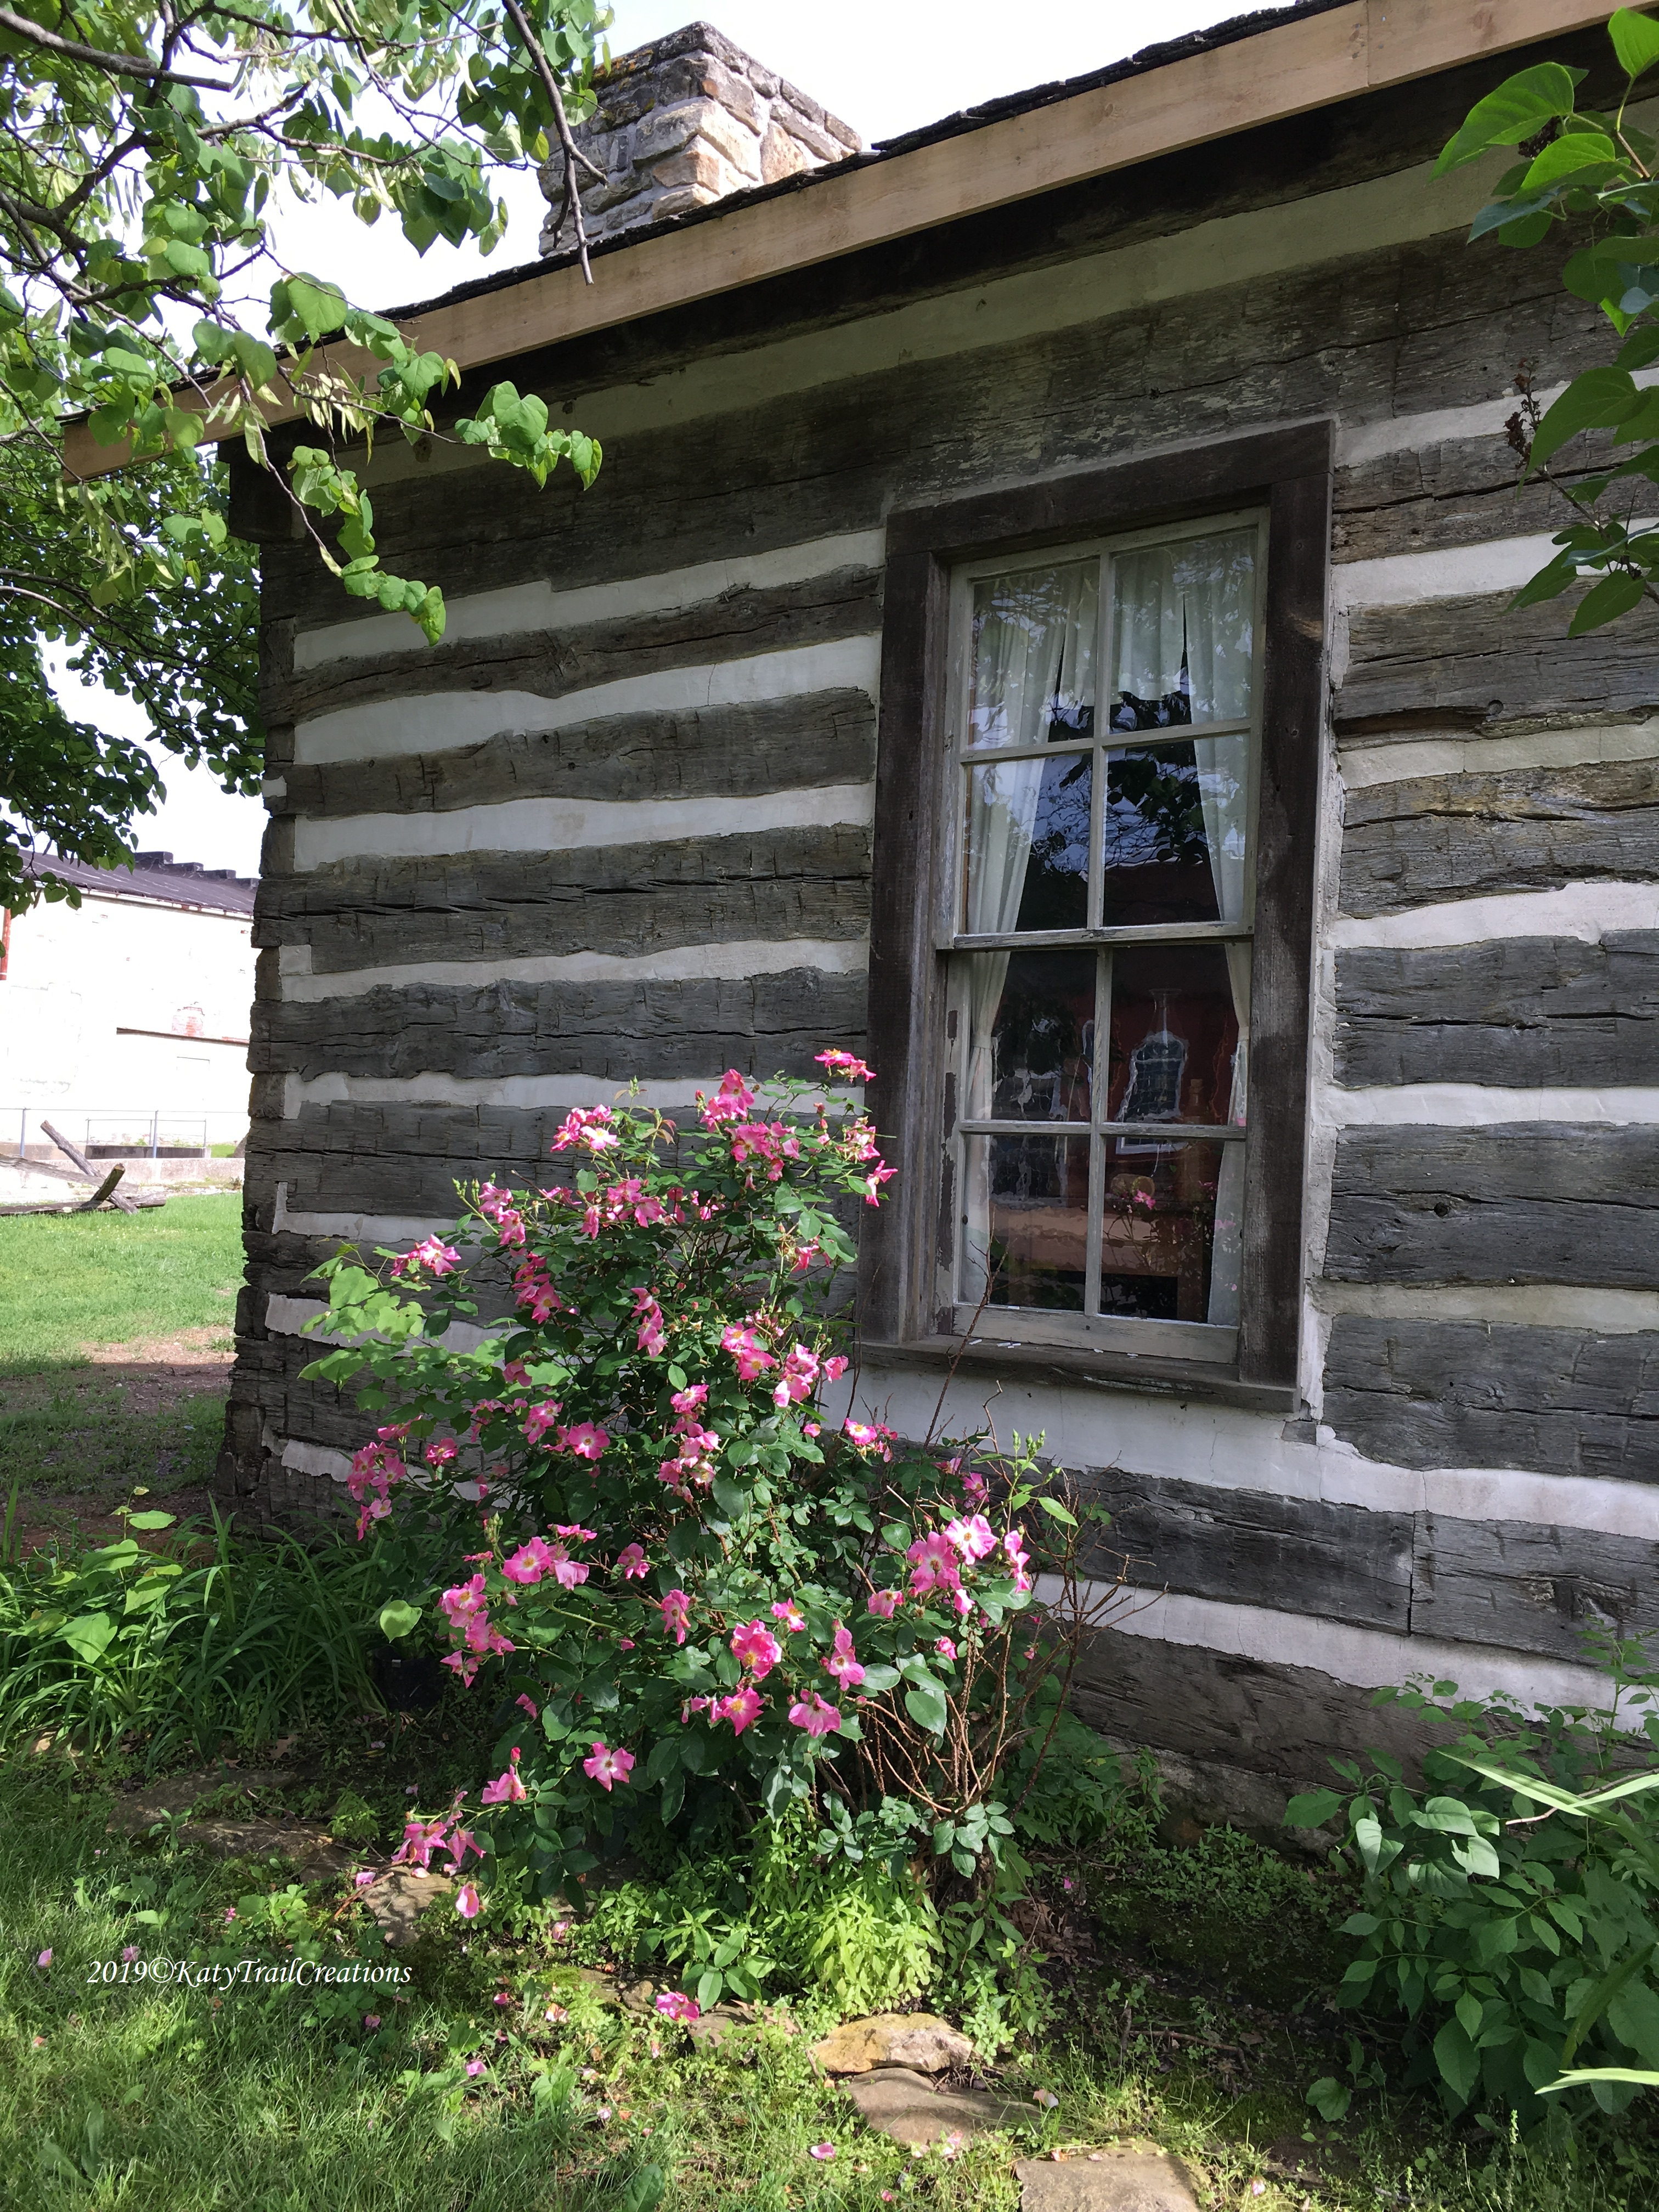 Wild Roses are perfect along this window. Love them!